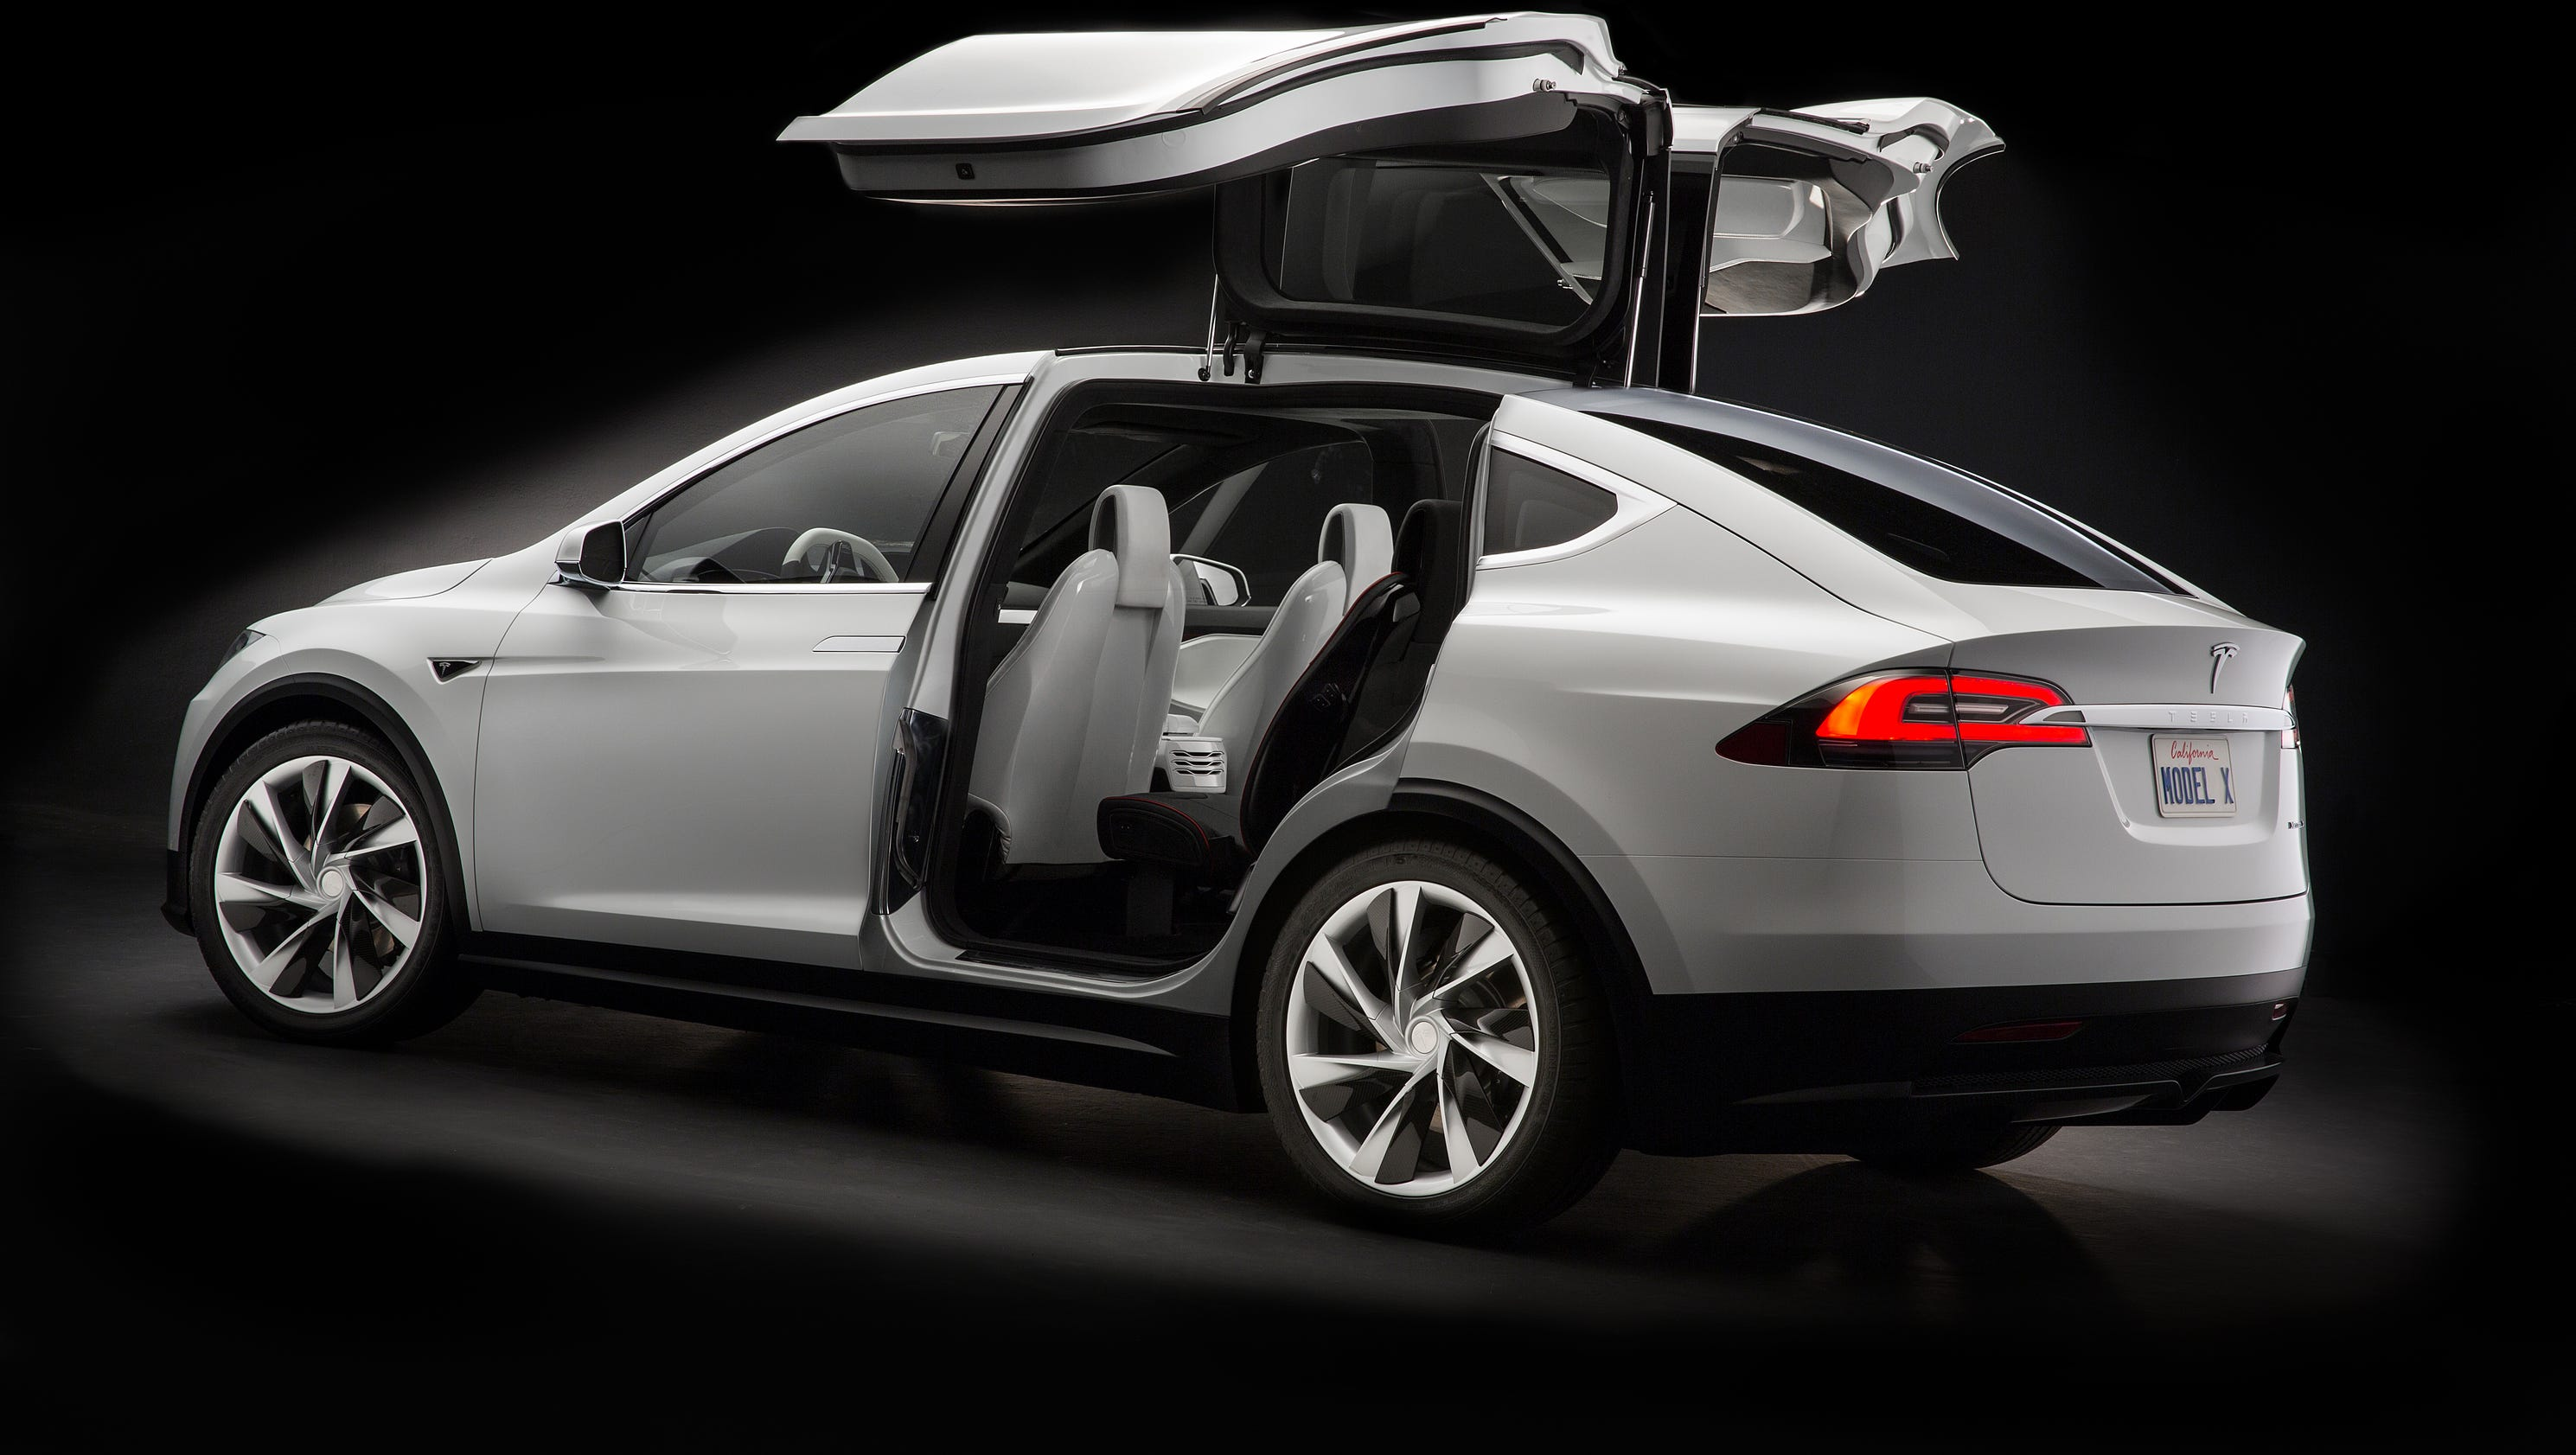 tesla issuing first recall for model x crossover suv. Black Bedroom Furniture Sets. Home Design Ideas